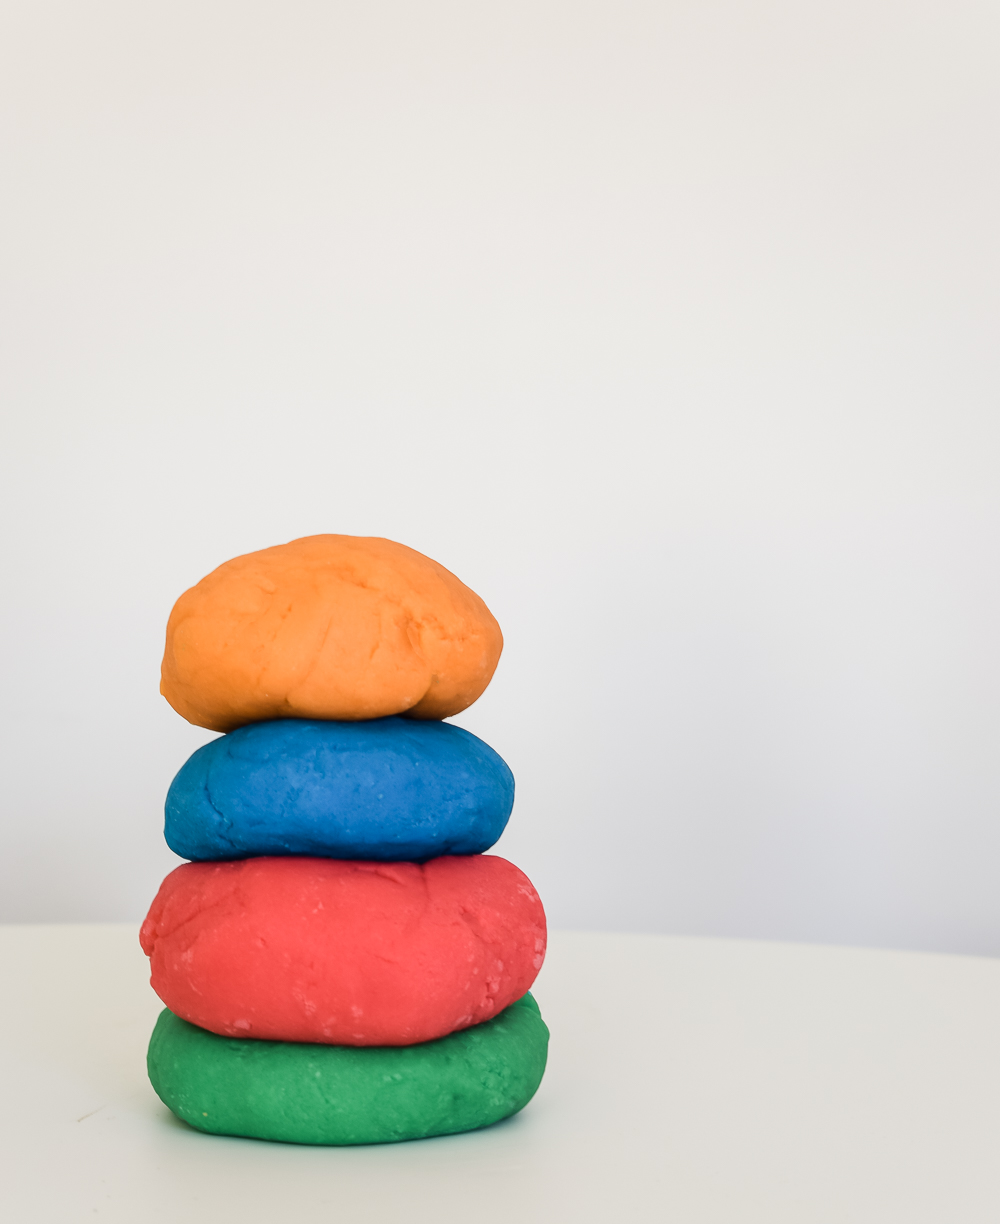 homemade playdough stacked on top of each other with a white background. Red, blue, orange and green